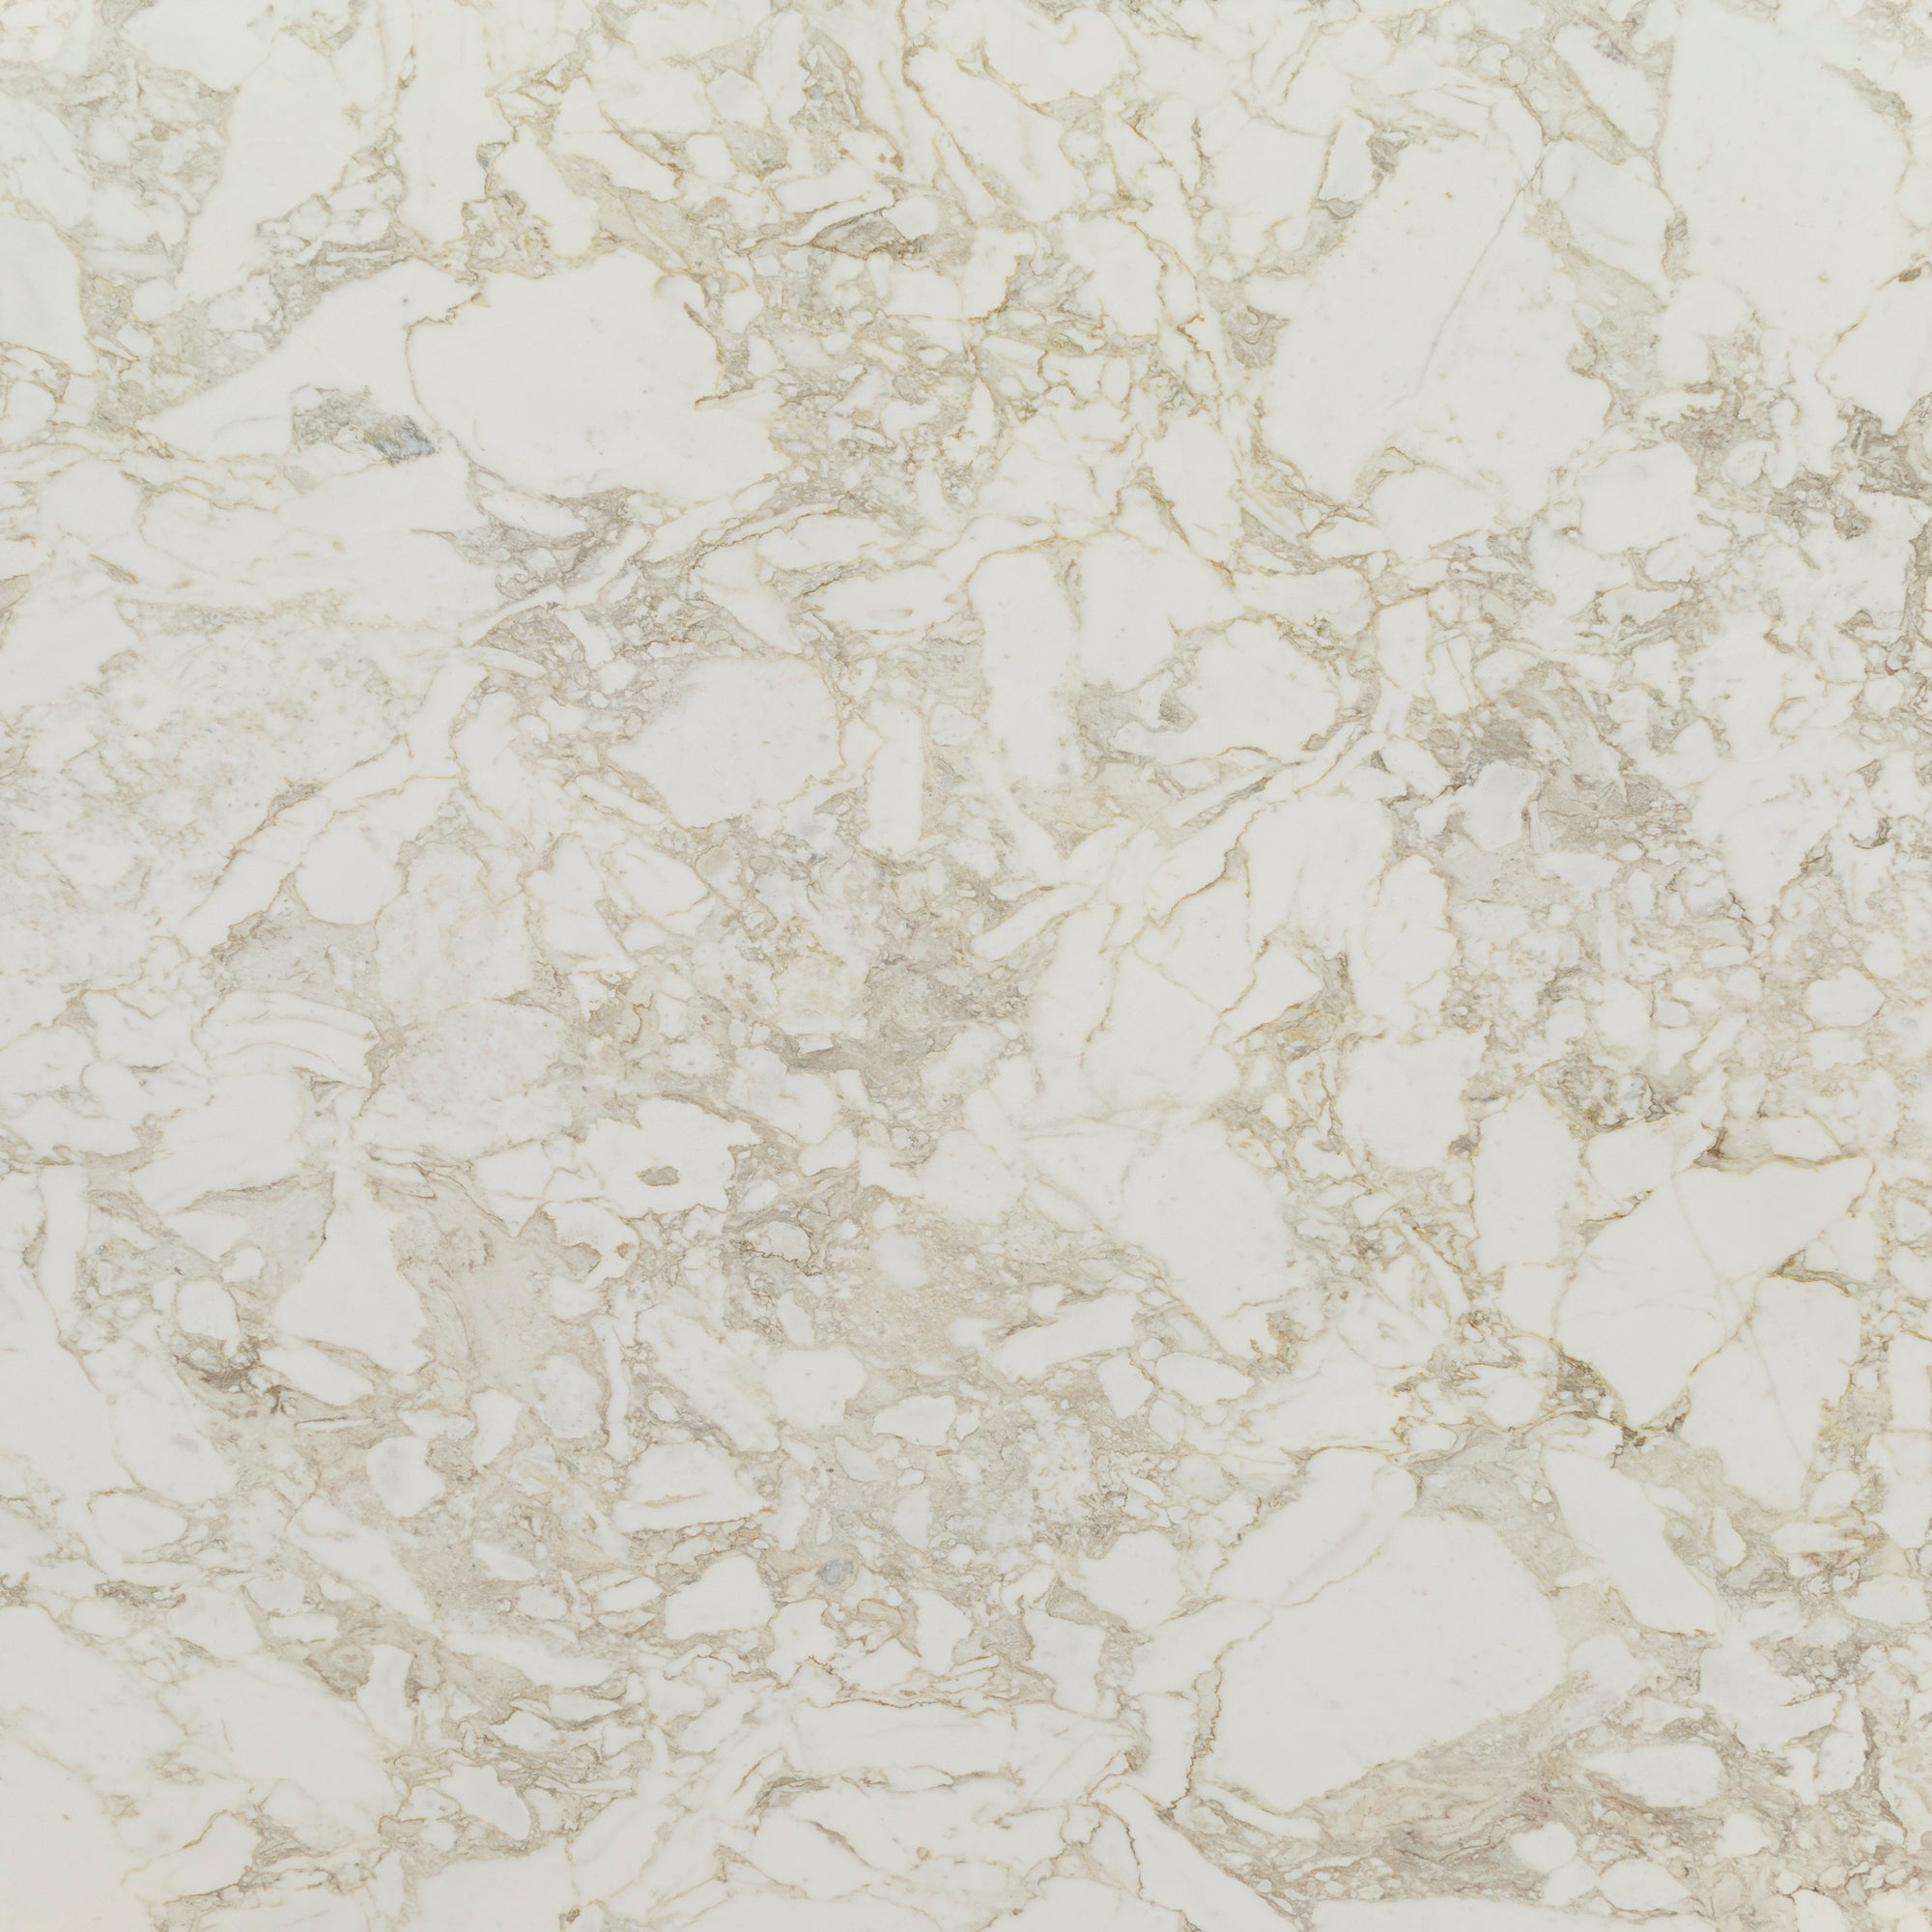 2cm Mediterraneo Marble Swatch Card  Polished Samples Slab product photo